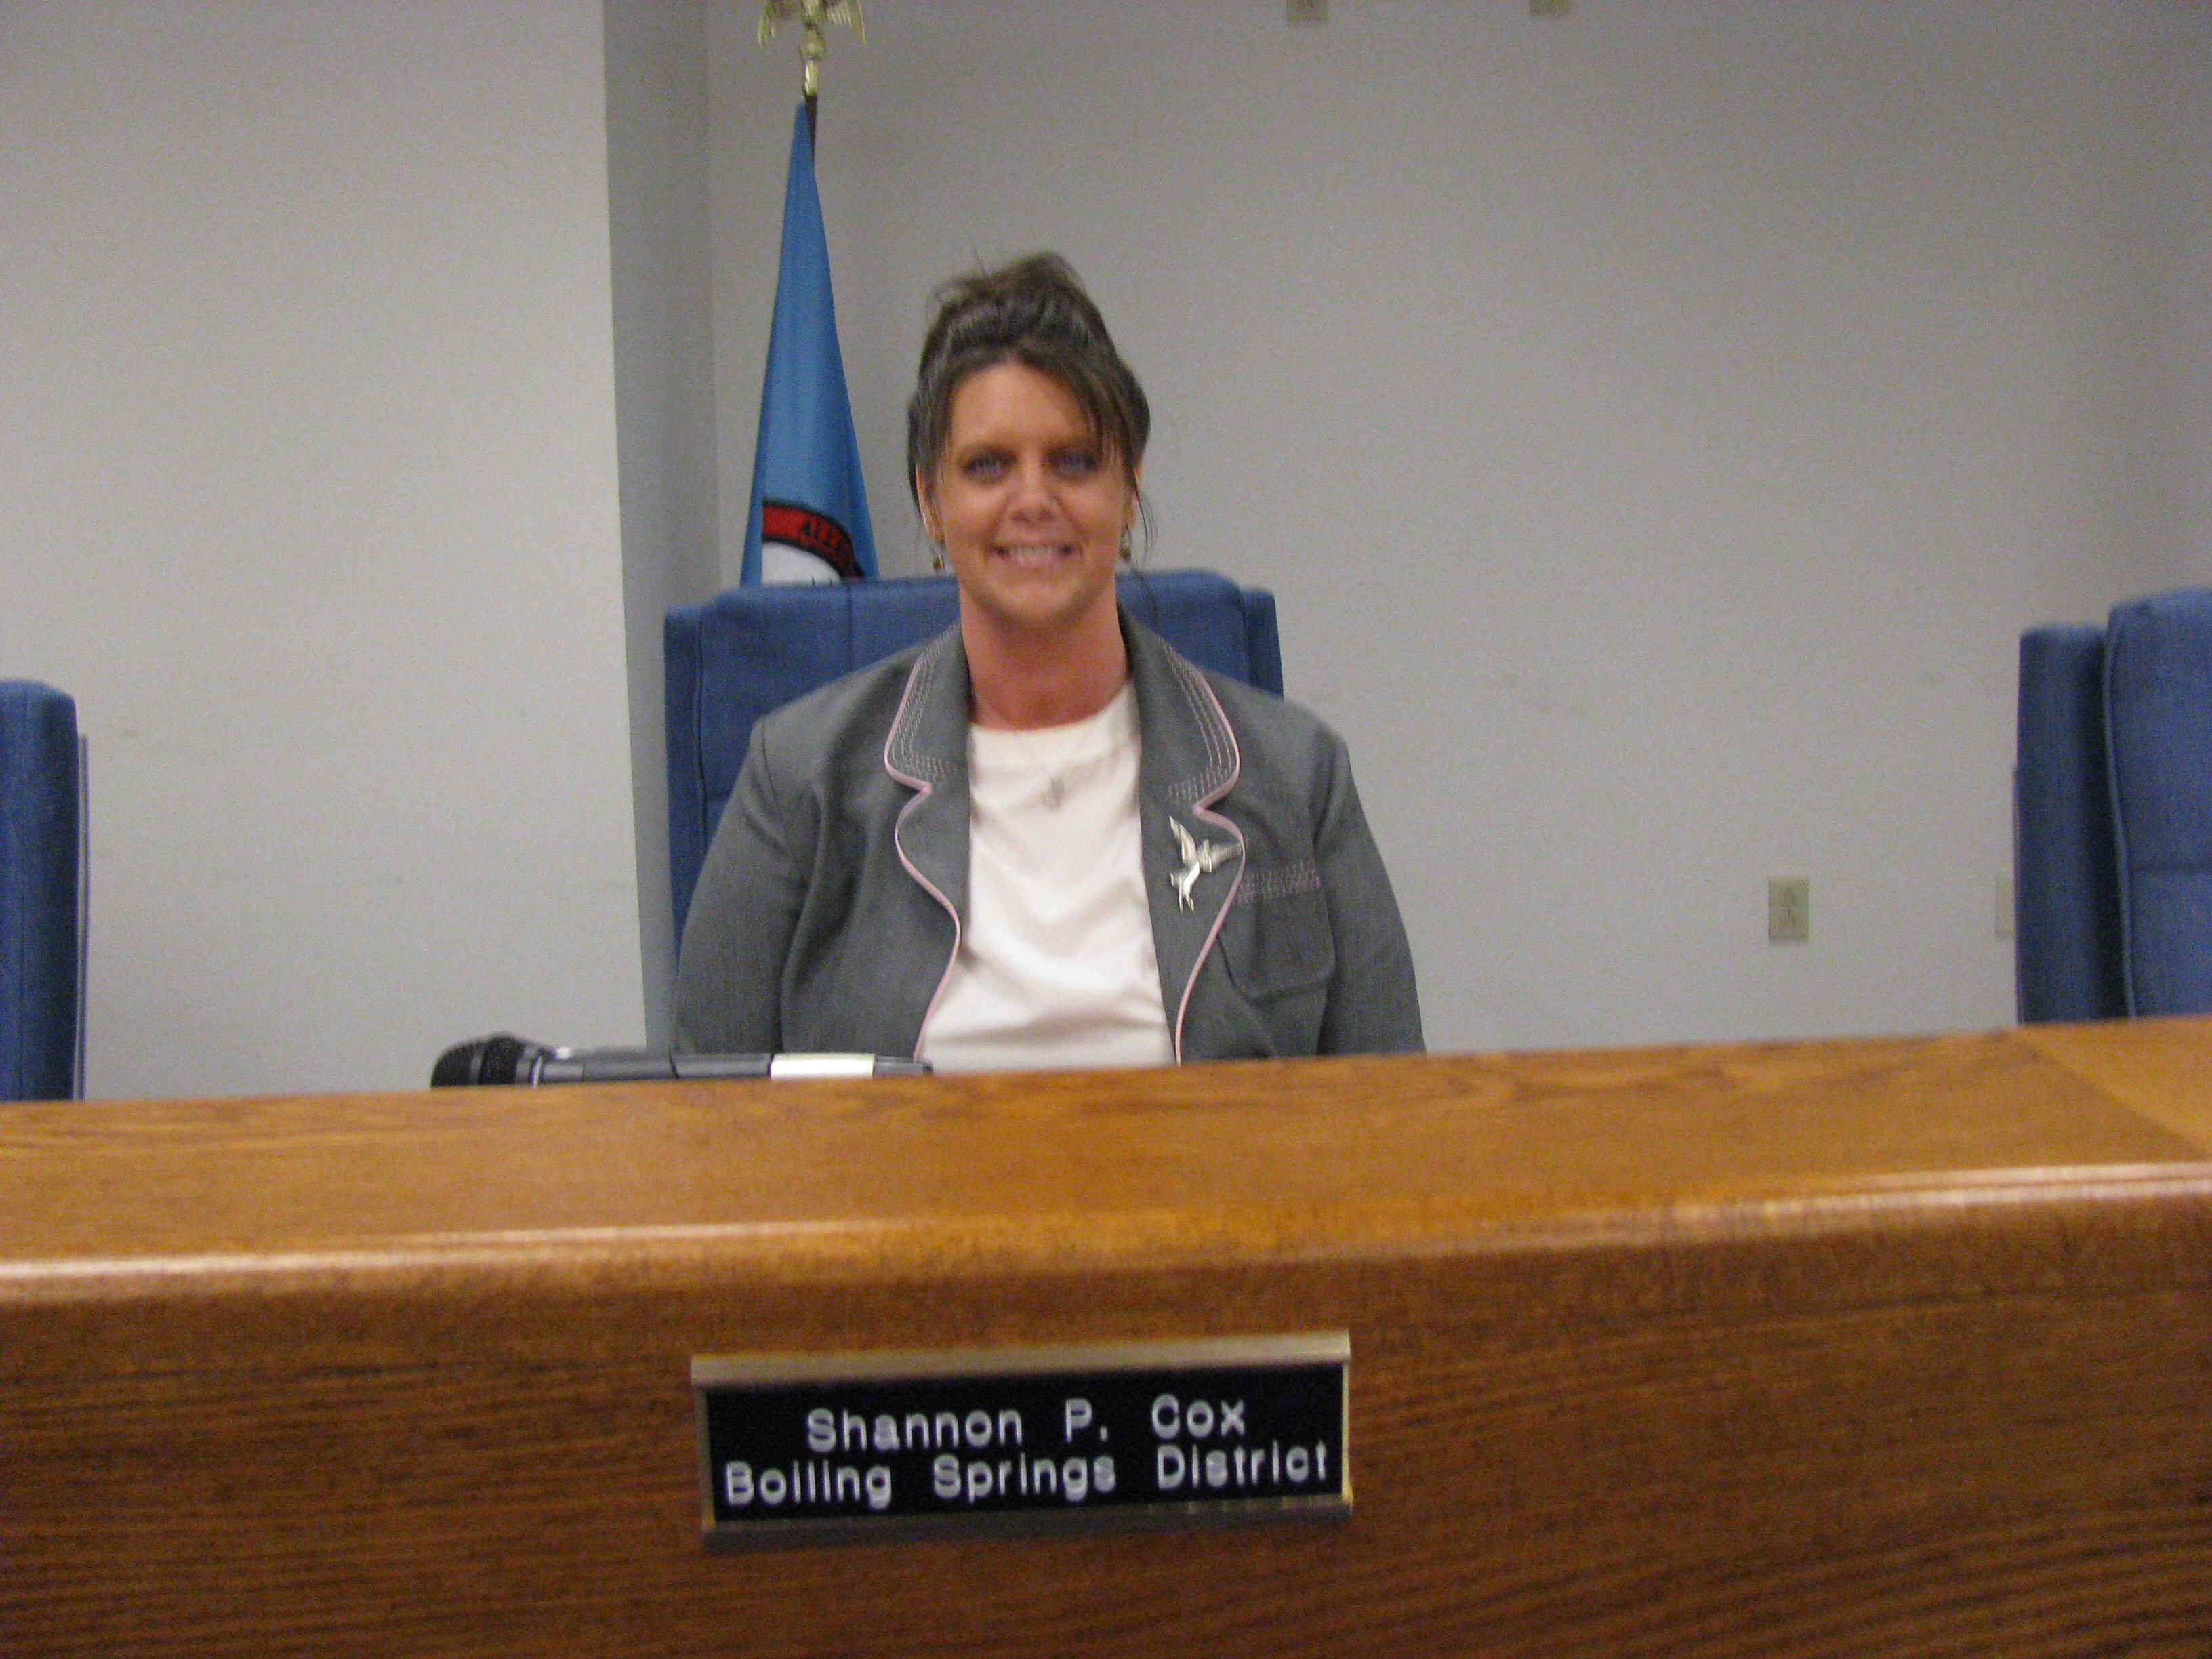 Alleghany Co VA Board of Supervisors Member - Shannon P. Cox